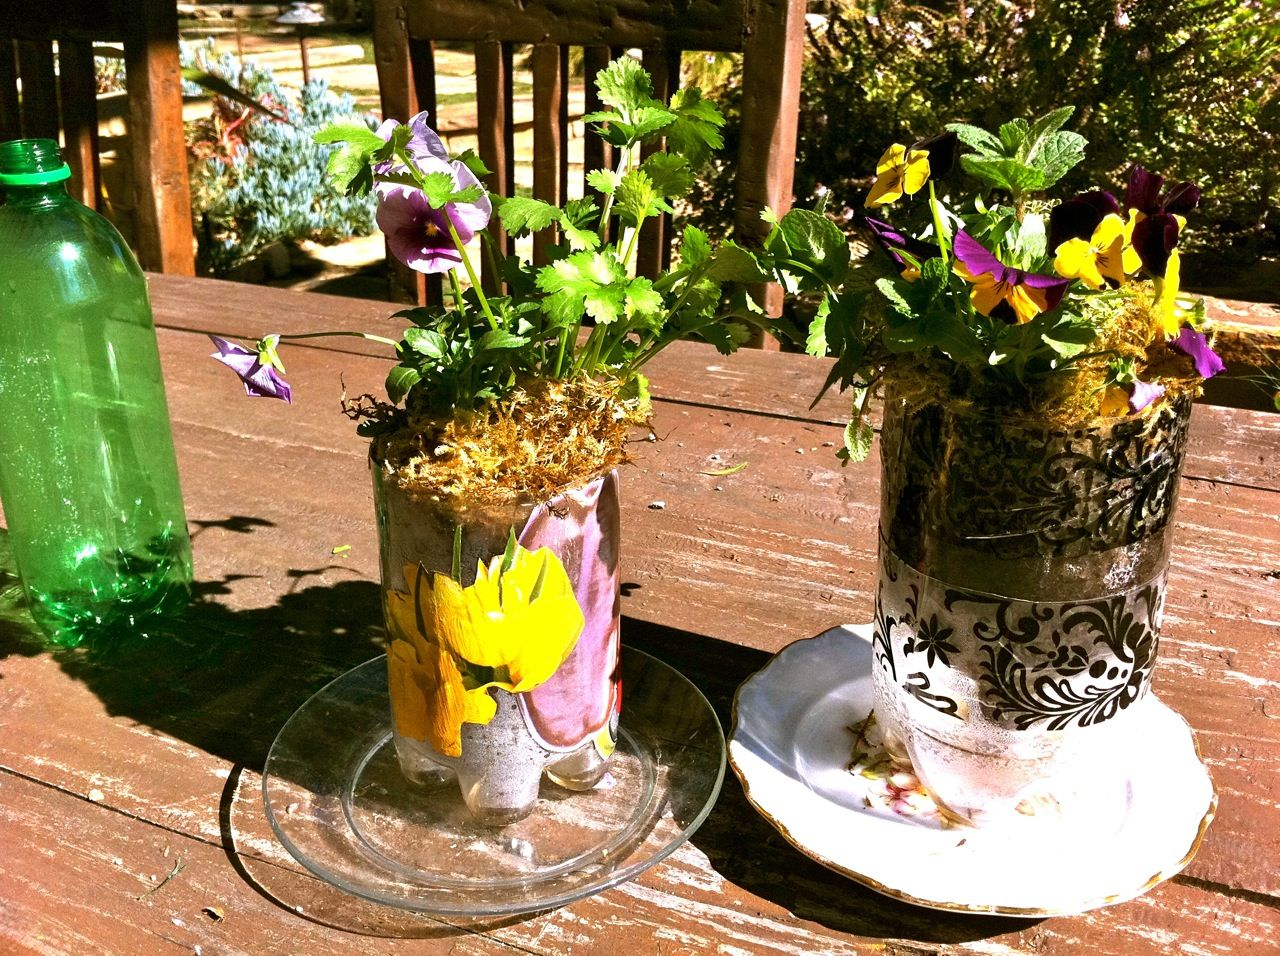 Recycled bottle planters diy recycled - Self Watering Planters Made From Repurposed Plastic Soda Bottles Read The Instructions On Edenmakers Blog